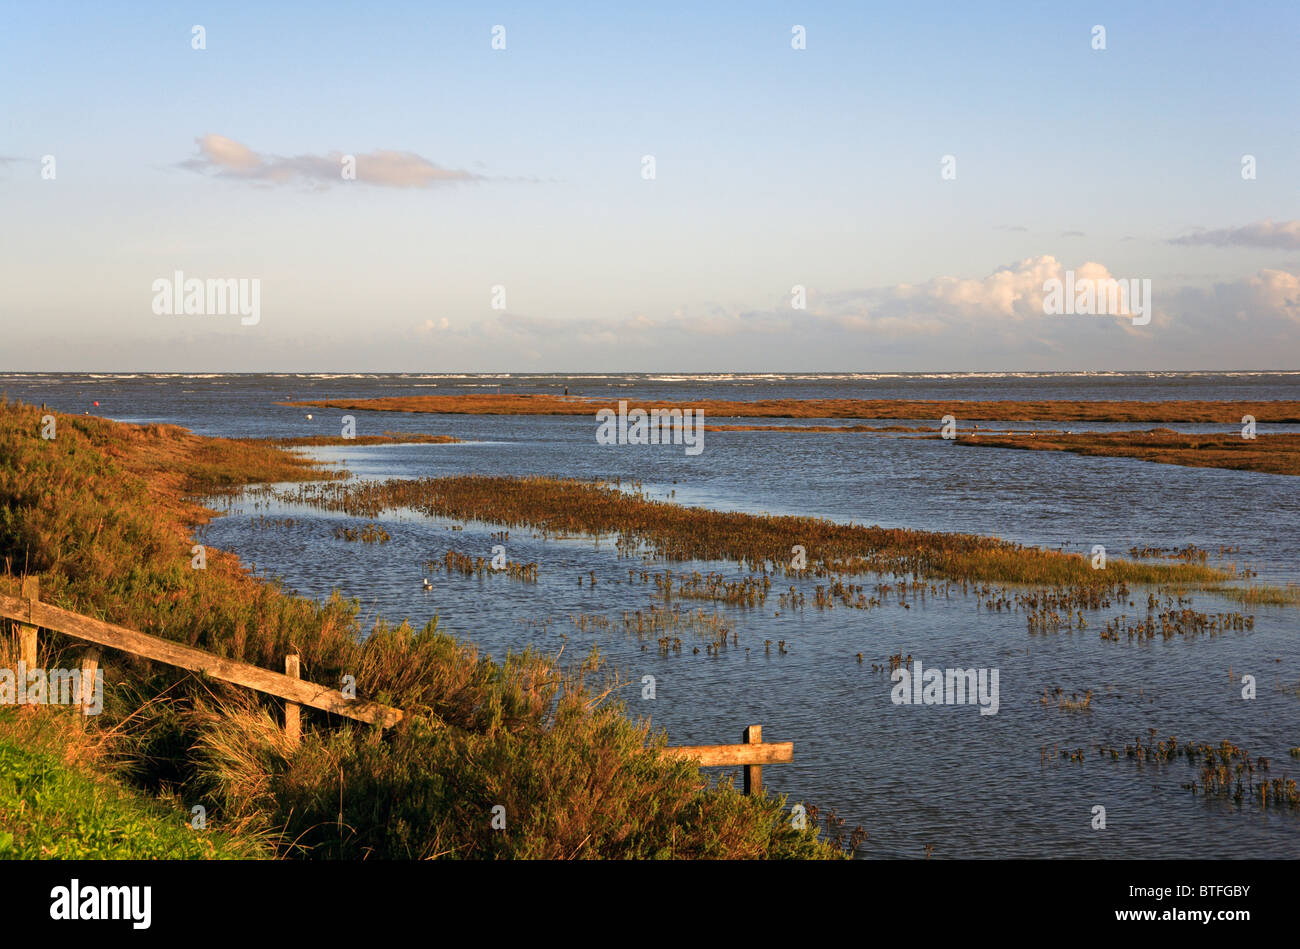 The harbour channel at high tide in early morning light at Thornham, Norfolk, England, United Kingdom. Stock Photo